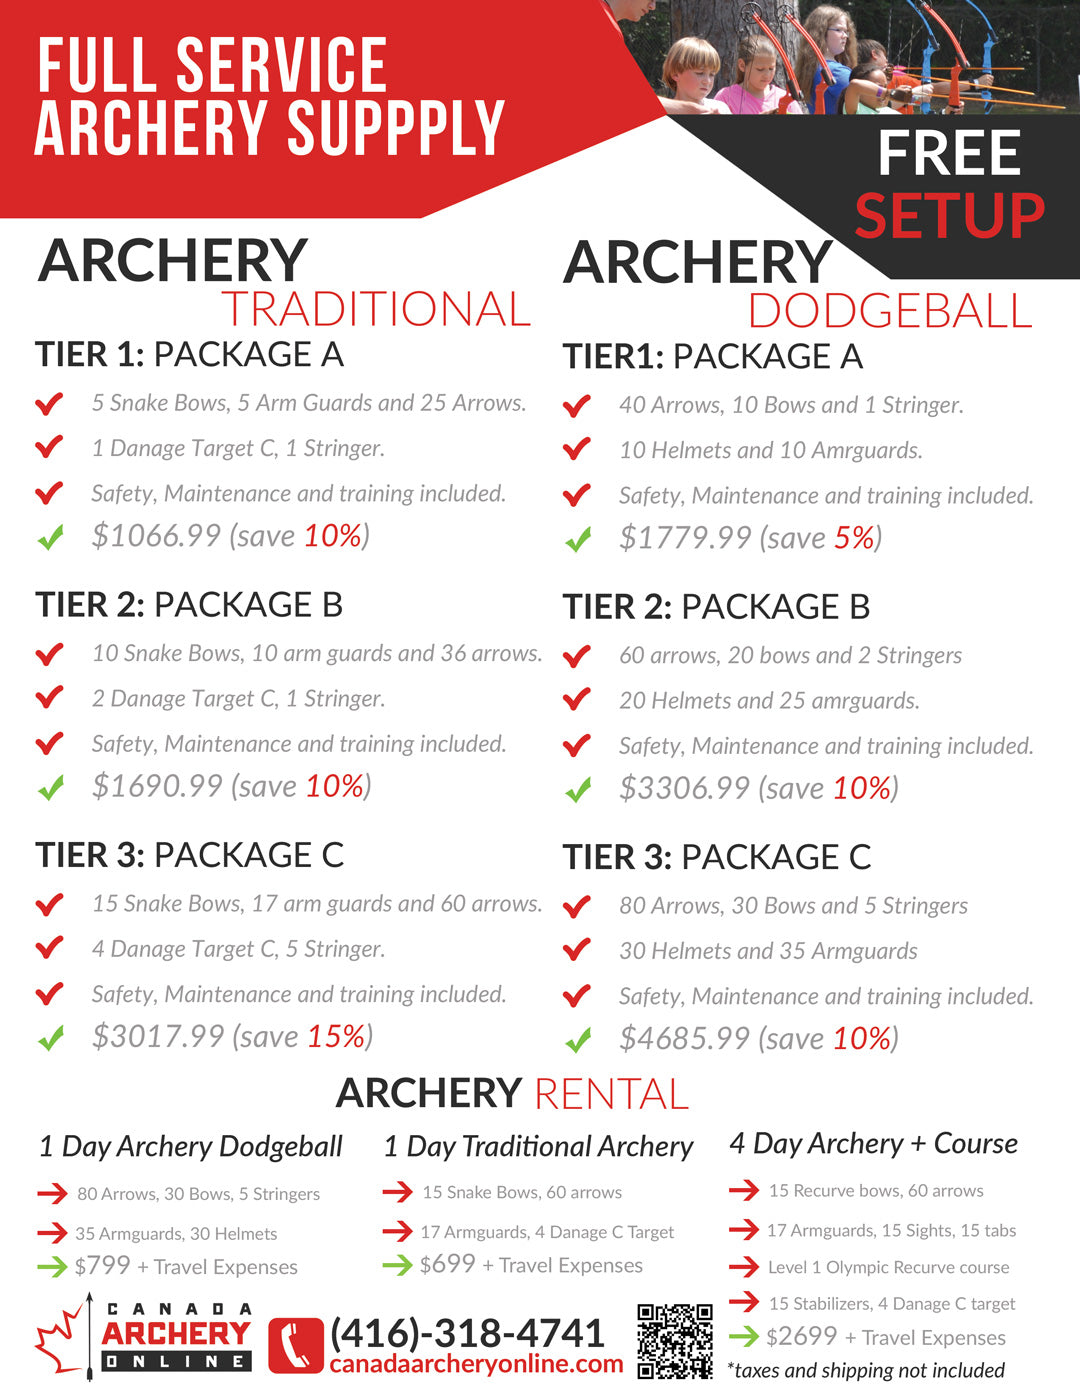 Canada Archery Online Camps & Recreation